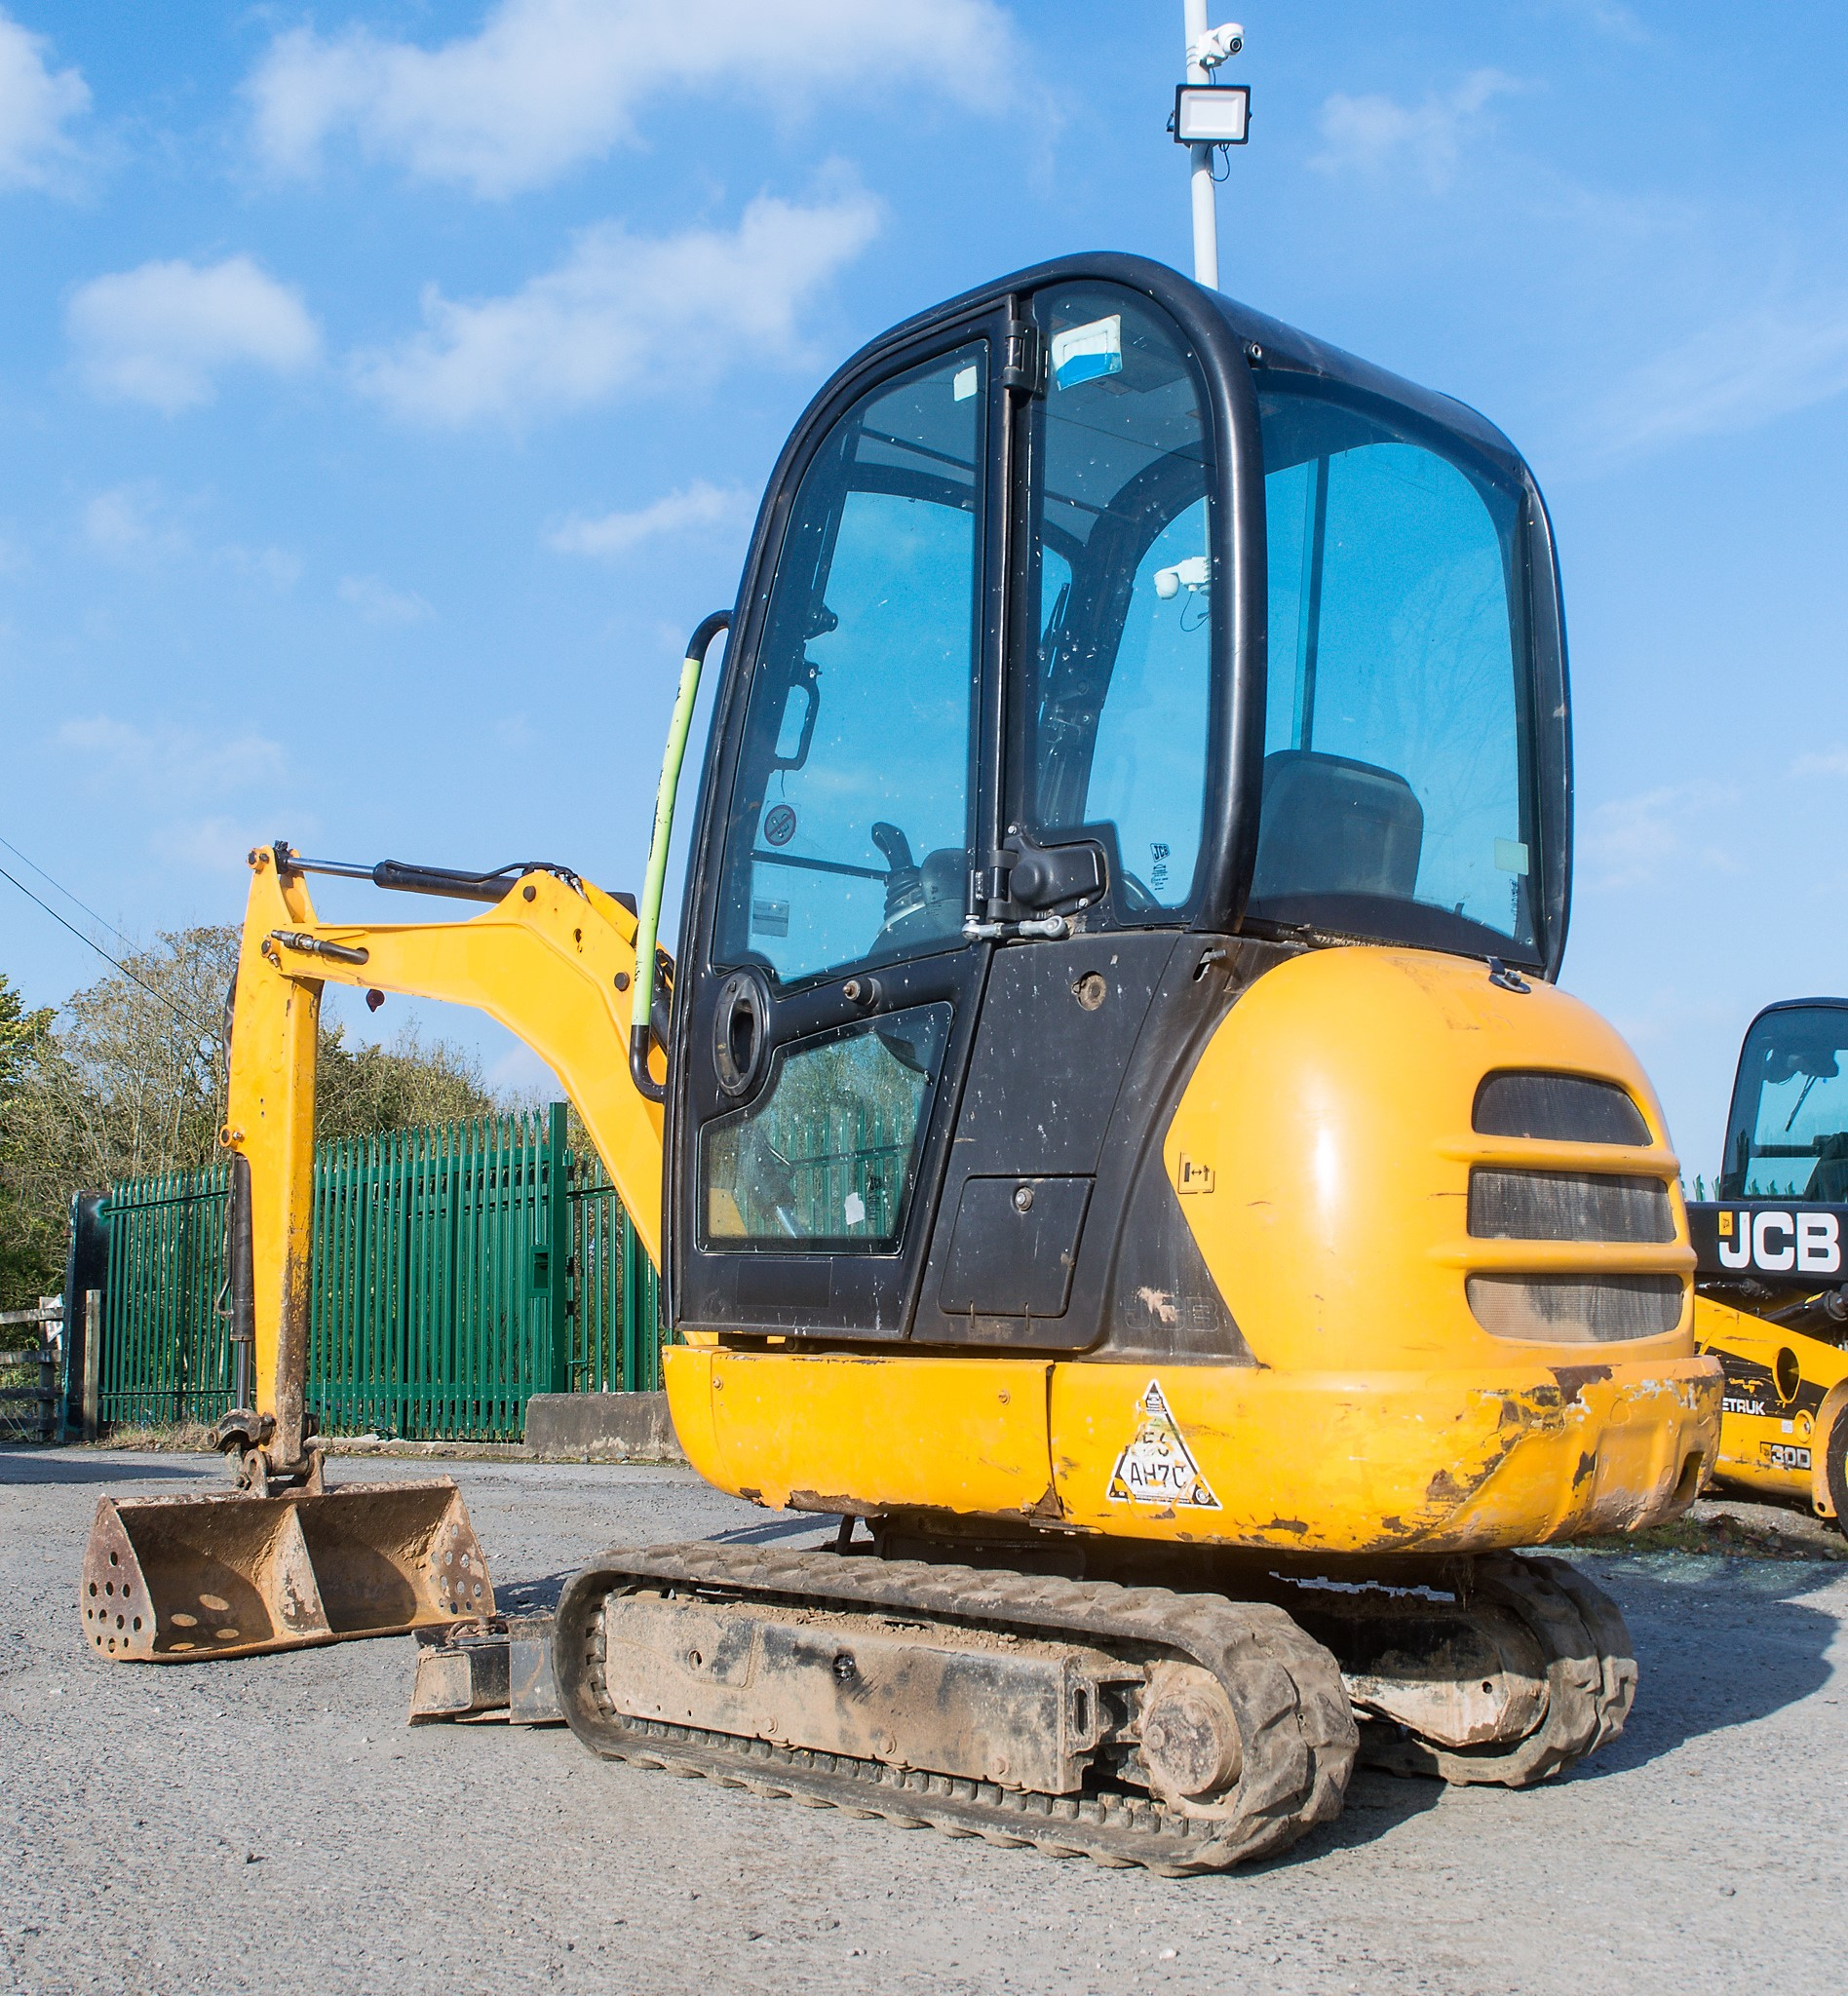 Lot 18 - JCB 8018 1.5 tonne rubber tracked mini excavator Year: 2013 S/N: 2074561 Recorded Hours: 1630 blade,